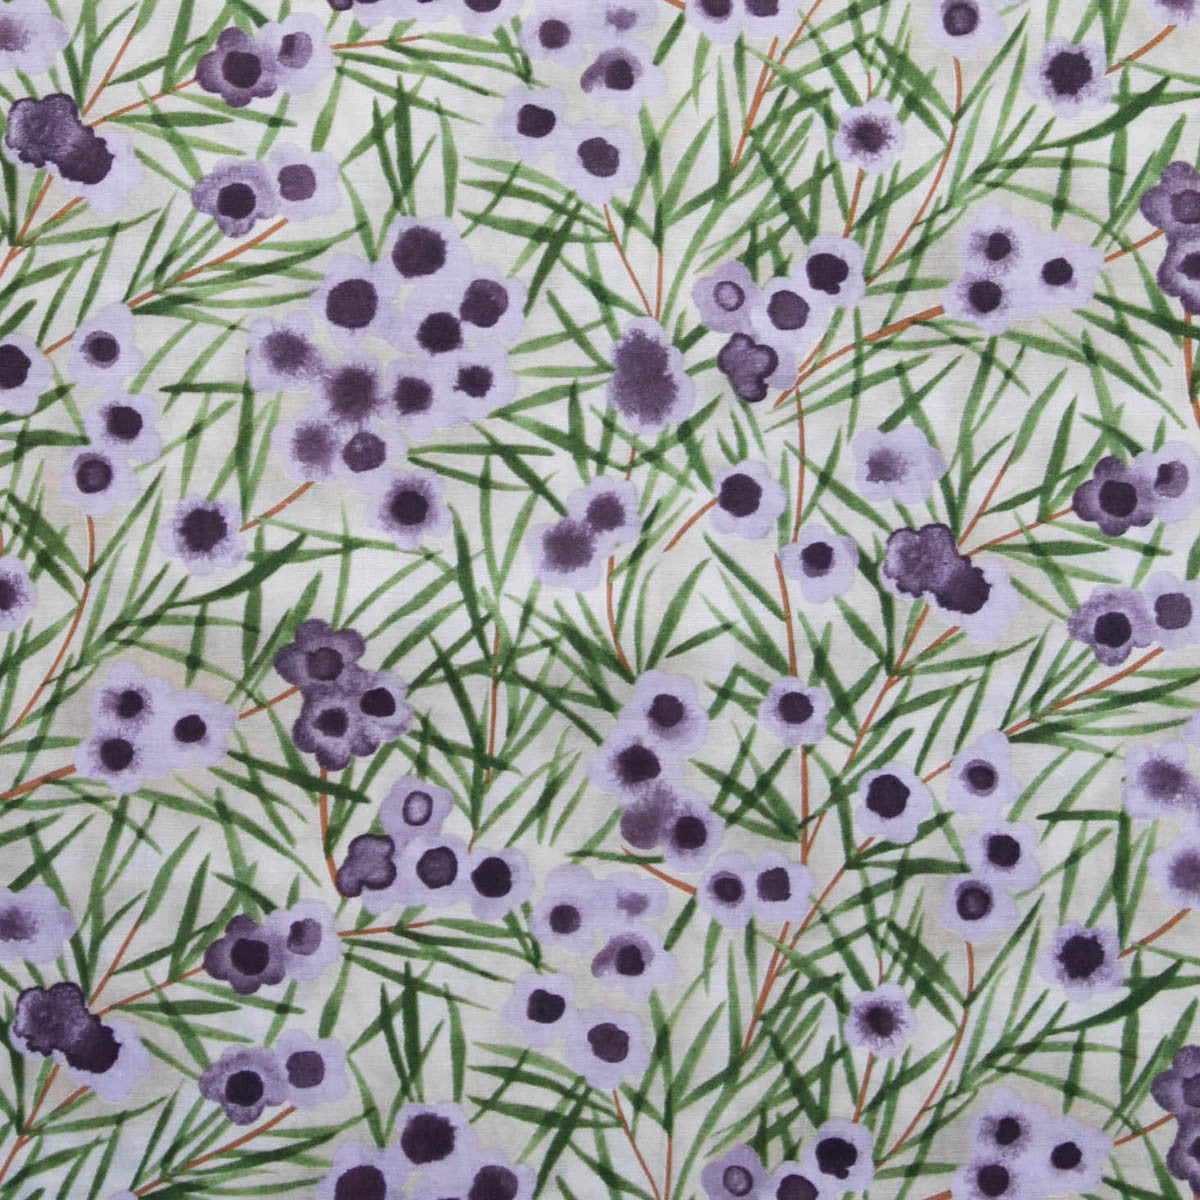 WAX FLOWER MAUVE by Australian Aboriginal Artist NATALIE RYAN